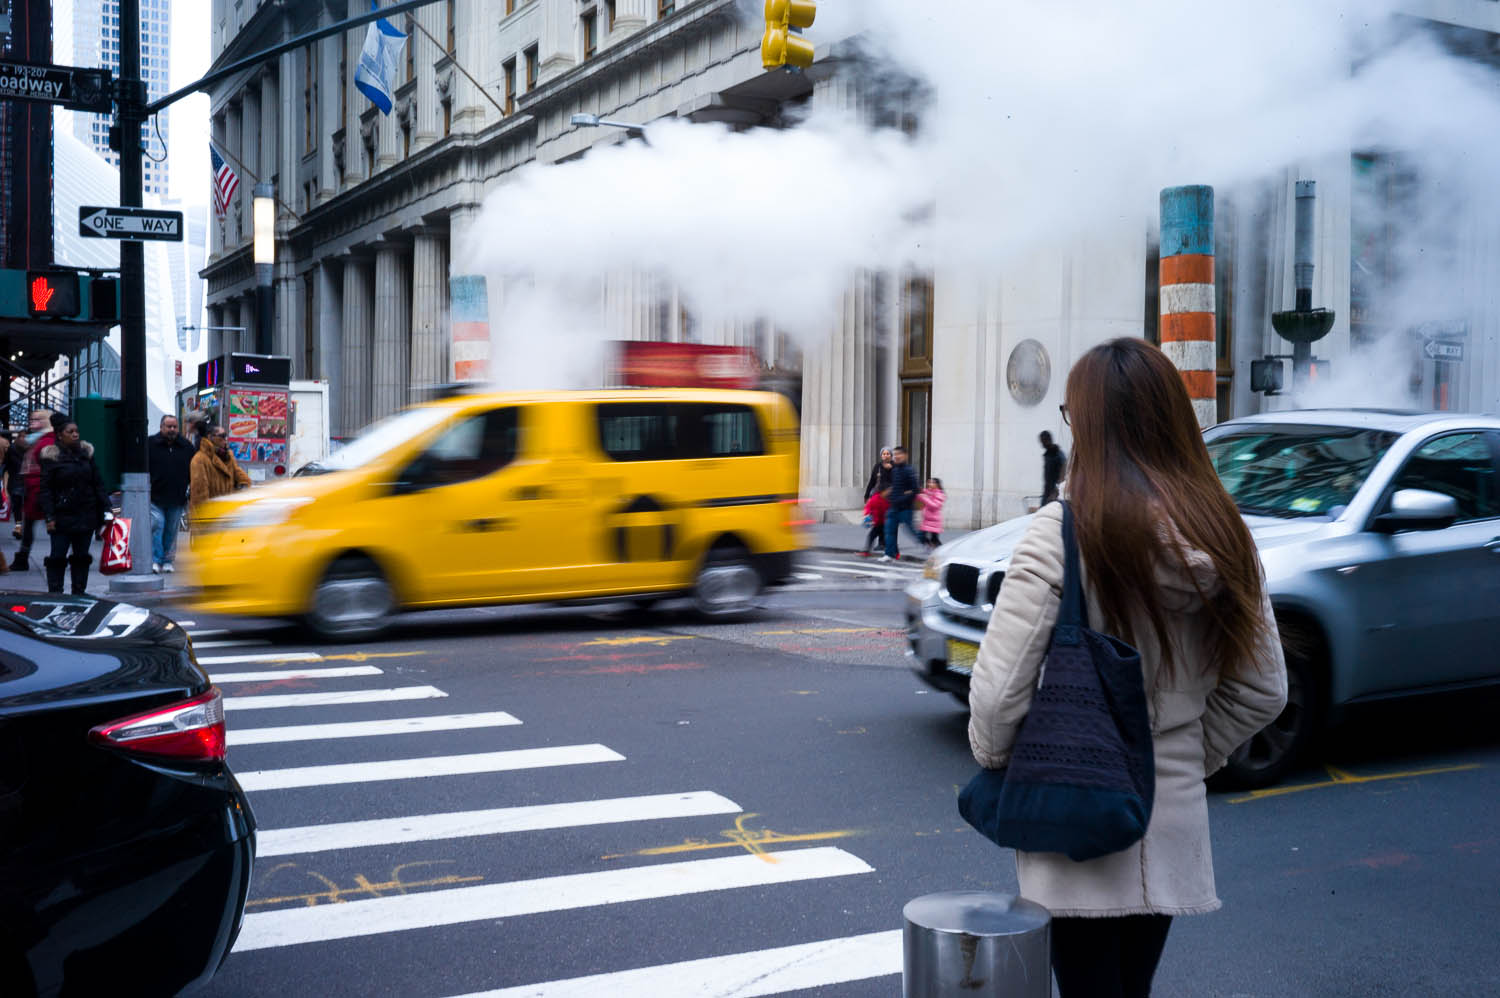 A girl stands at a NYC crosswalk as a yellow cab drives through